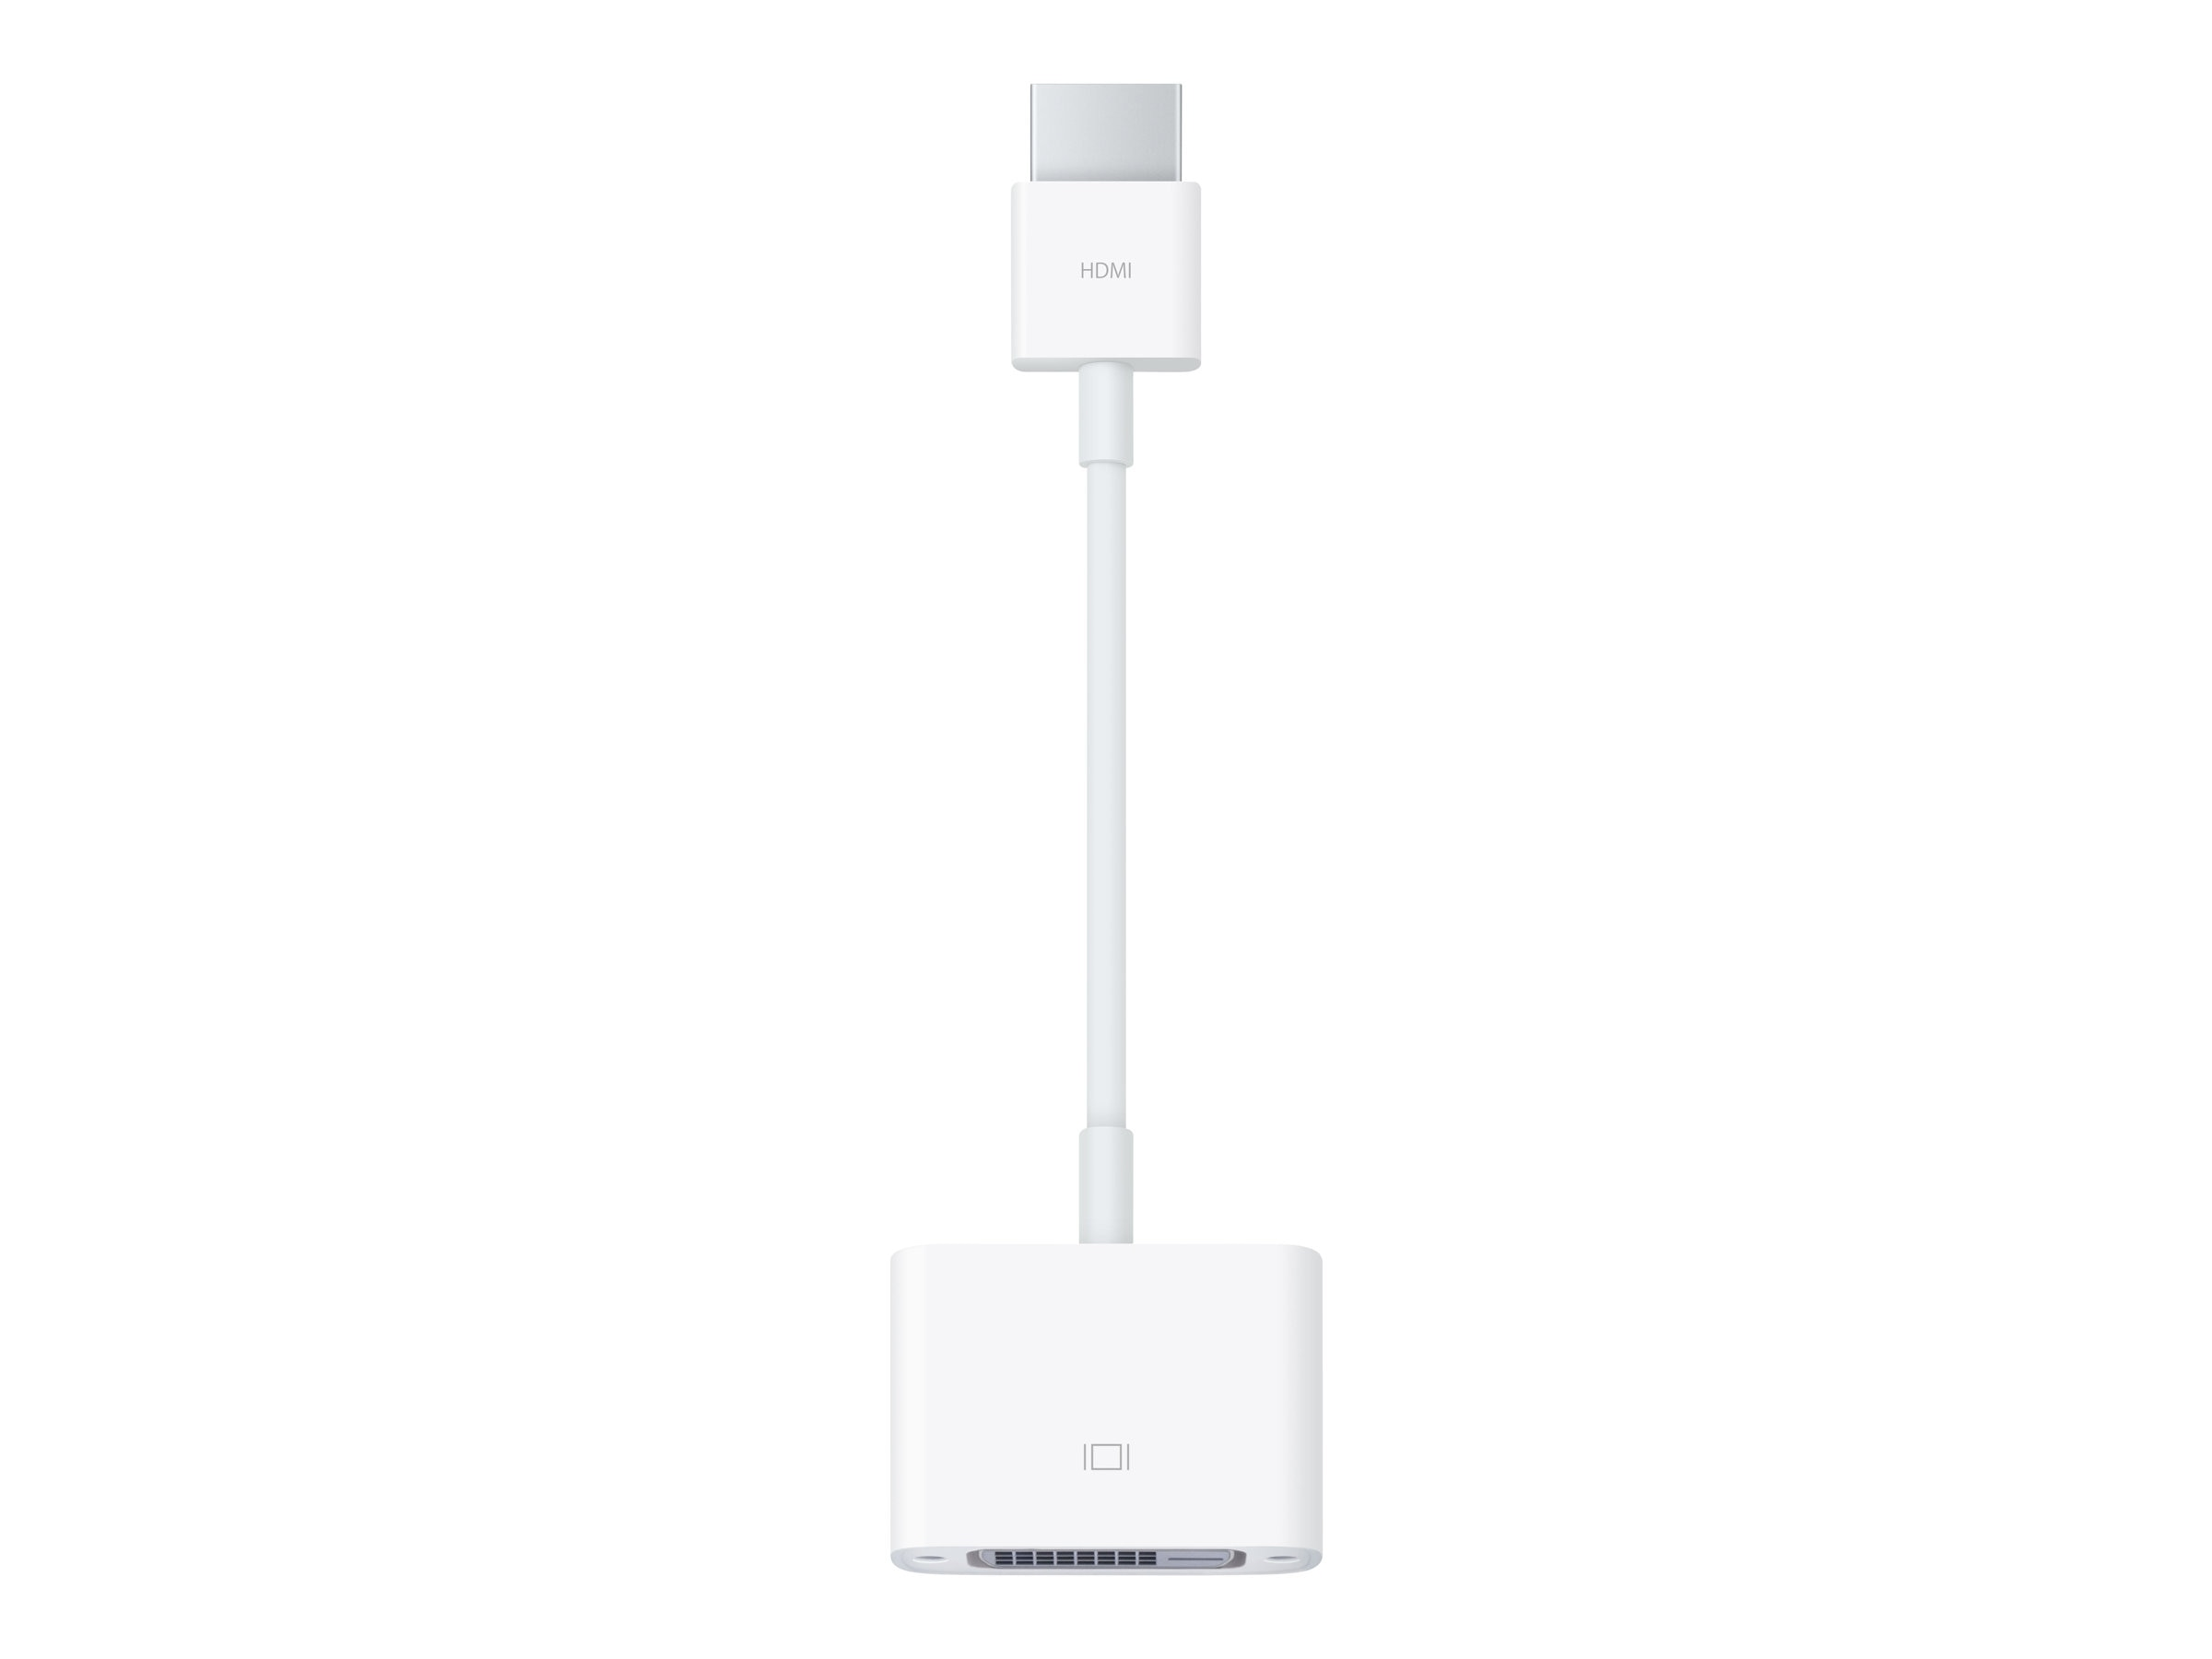 Apple HDMI to DVI M F Adapter, White